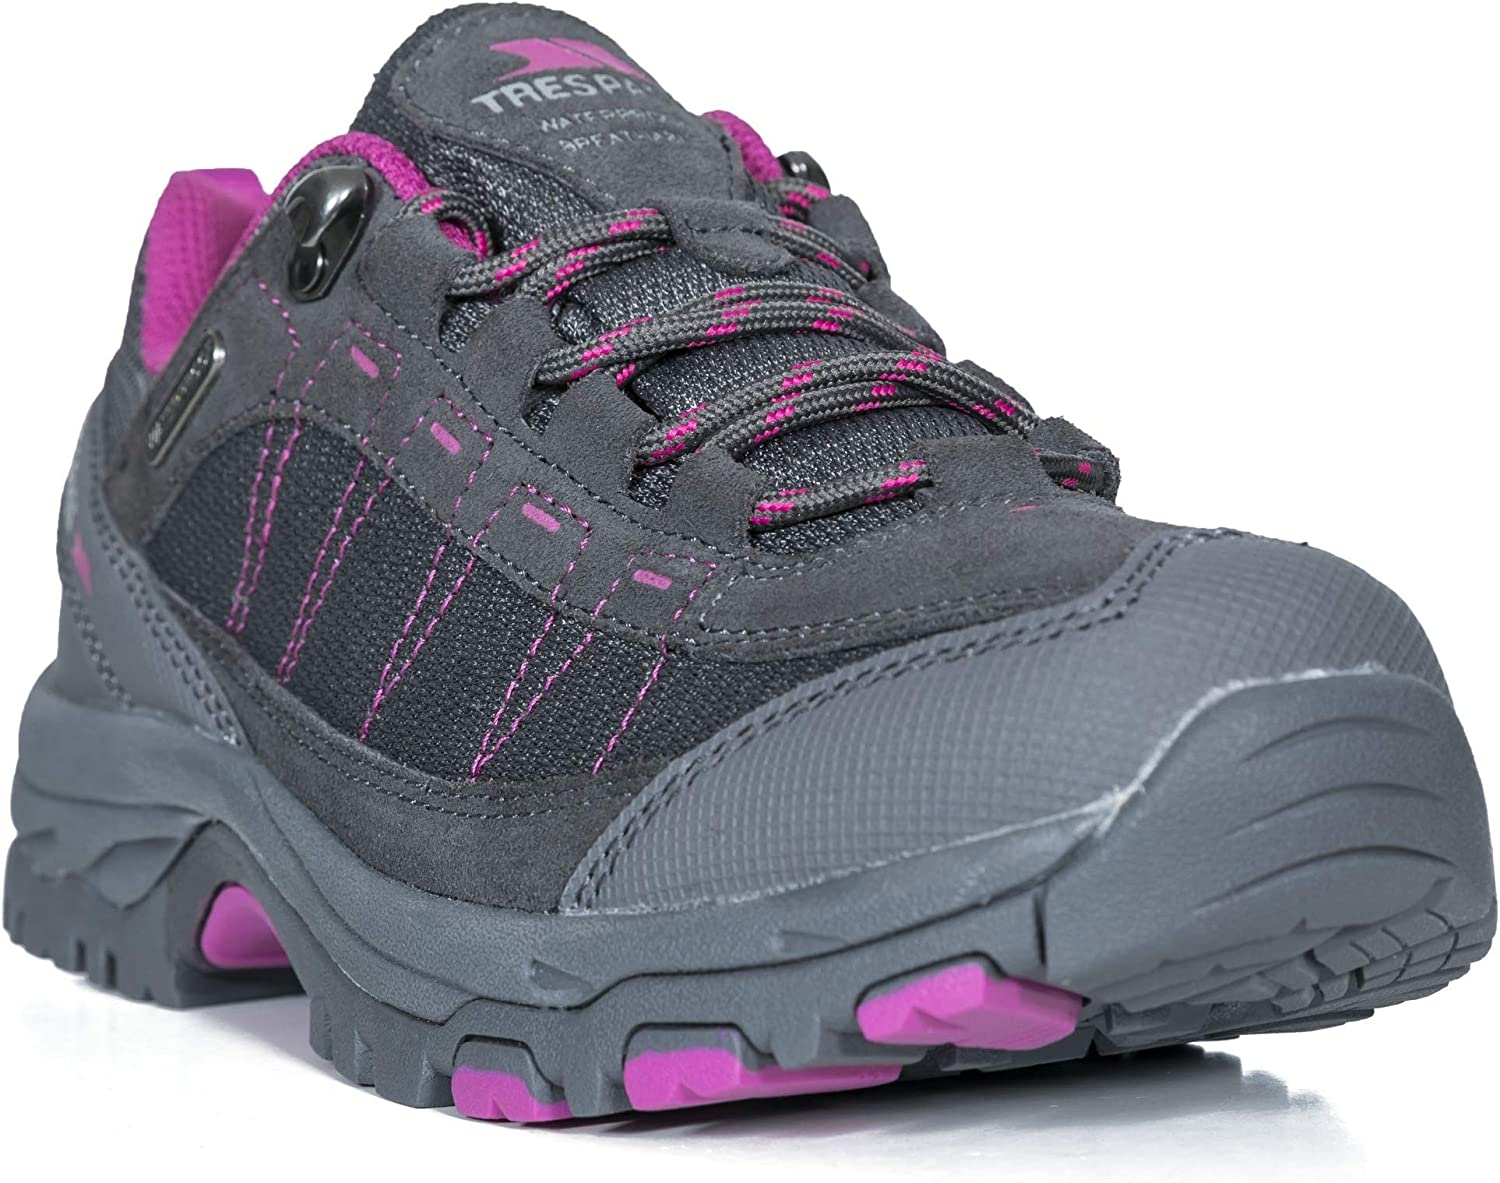 Womens Ladies Scree Lace Up Technical Walking shoes